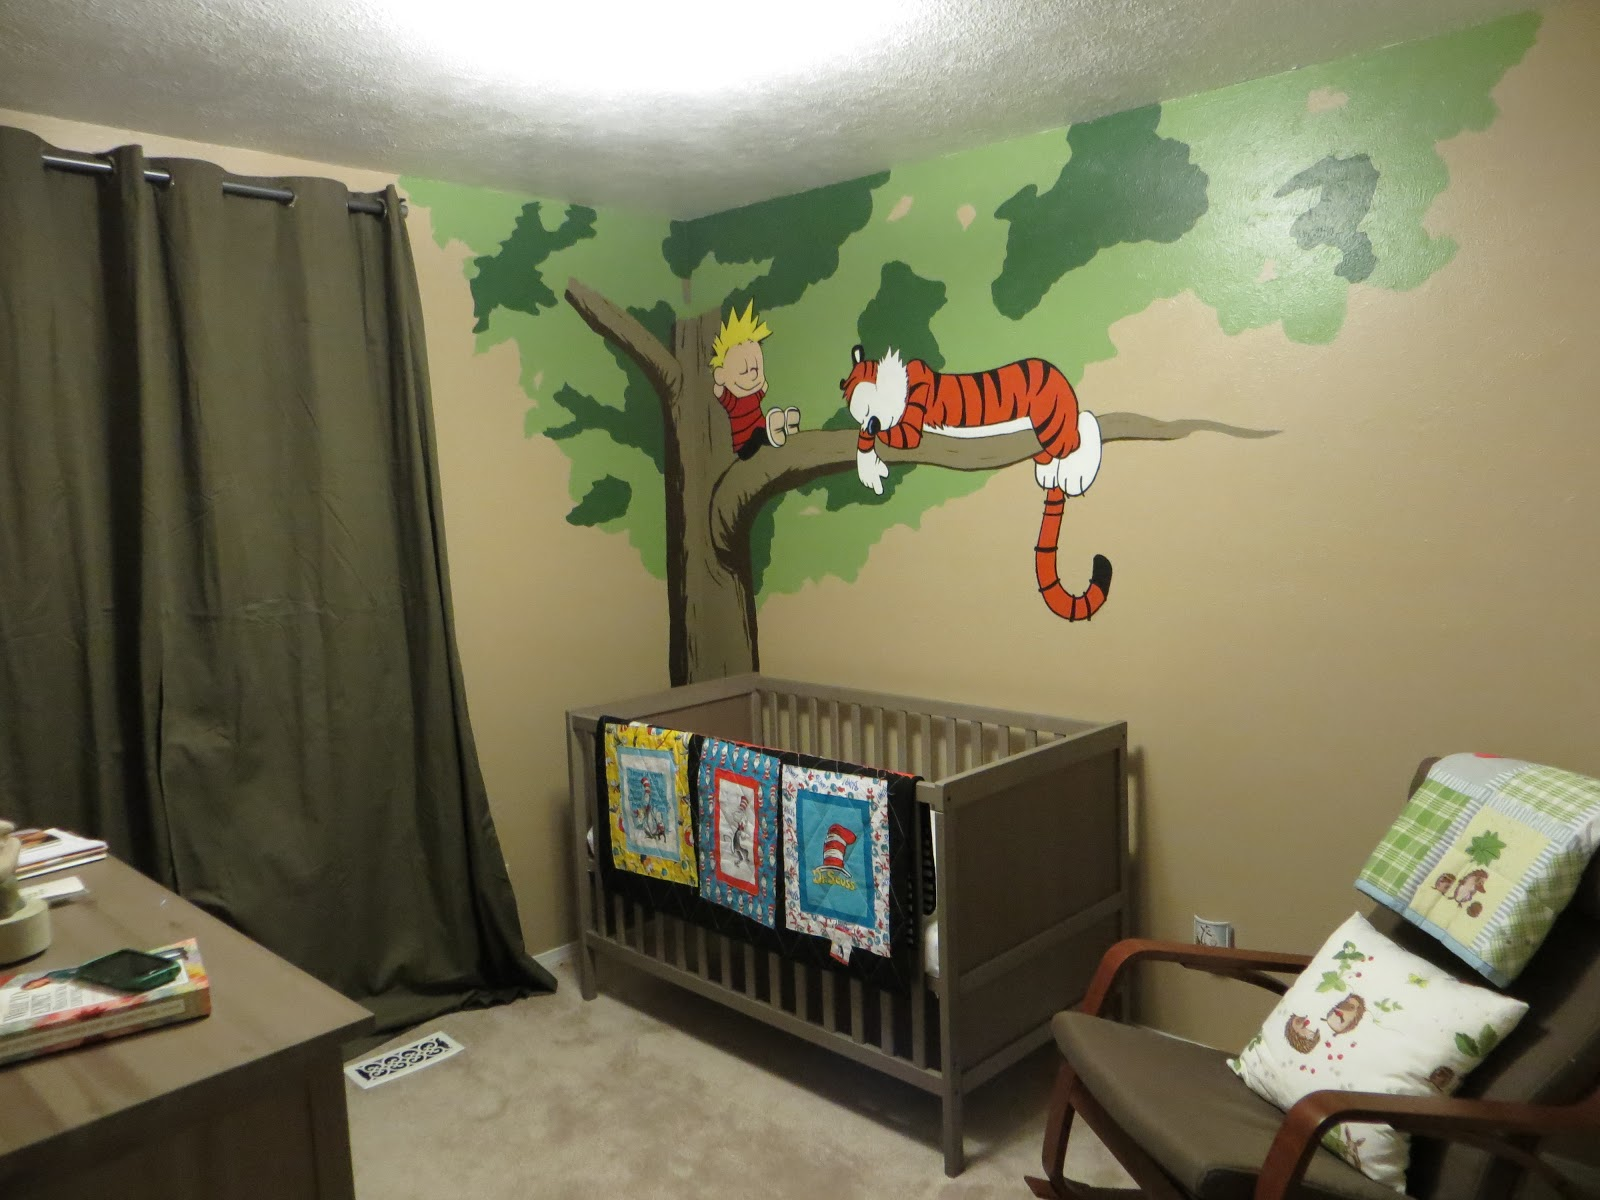 home decor on pinterest calvin and hobbes wall art and. Black Bedroom Furniture Sets. Home Design Ideas